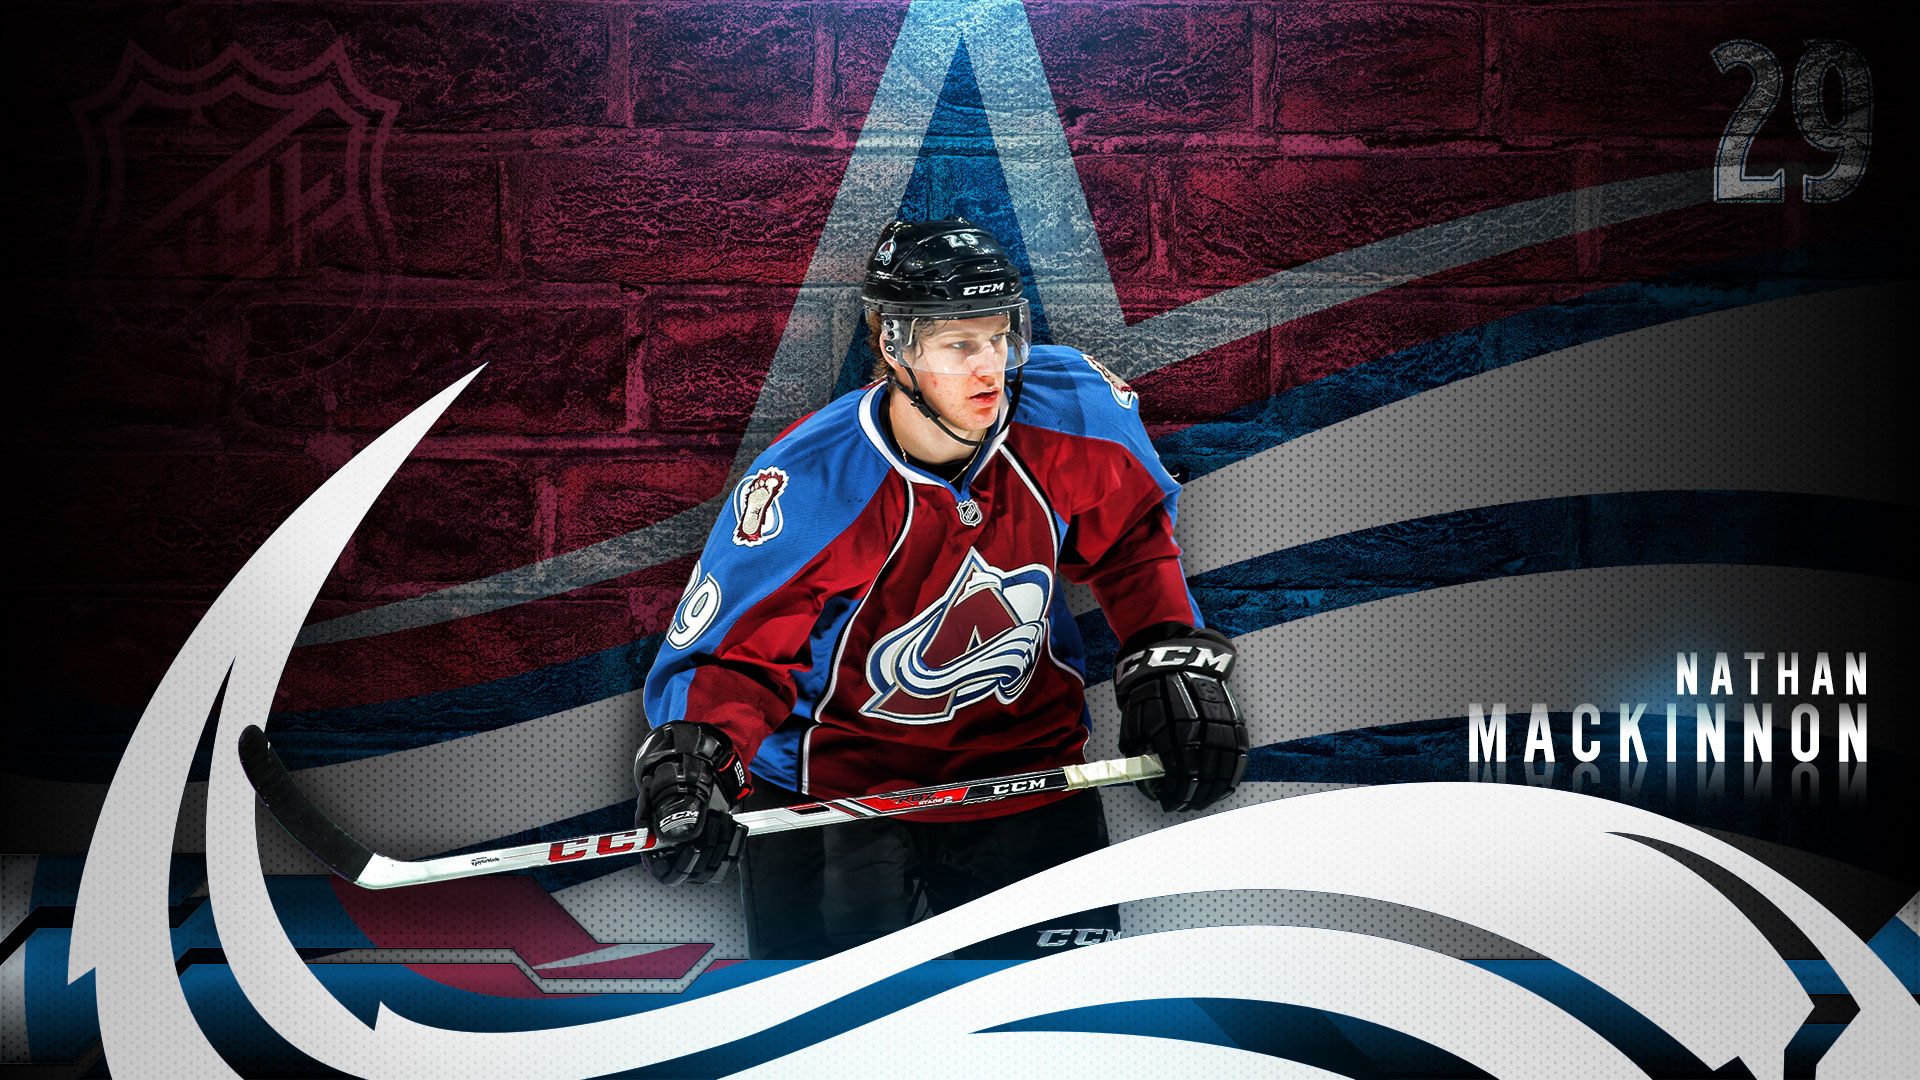 Nathan MacKinnon Wallpaper